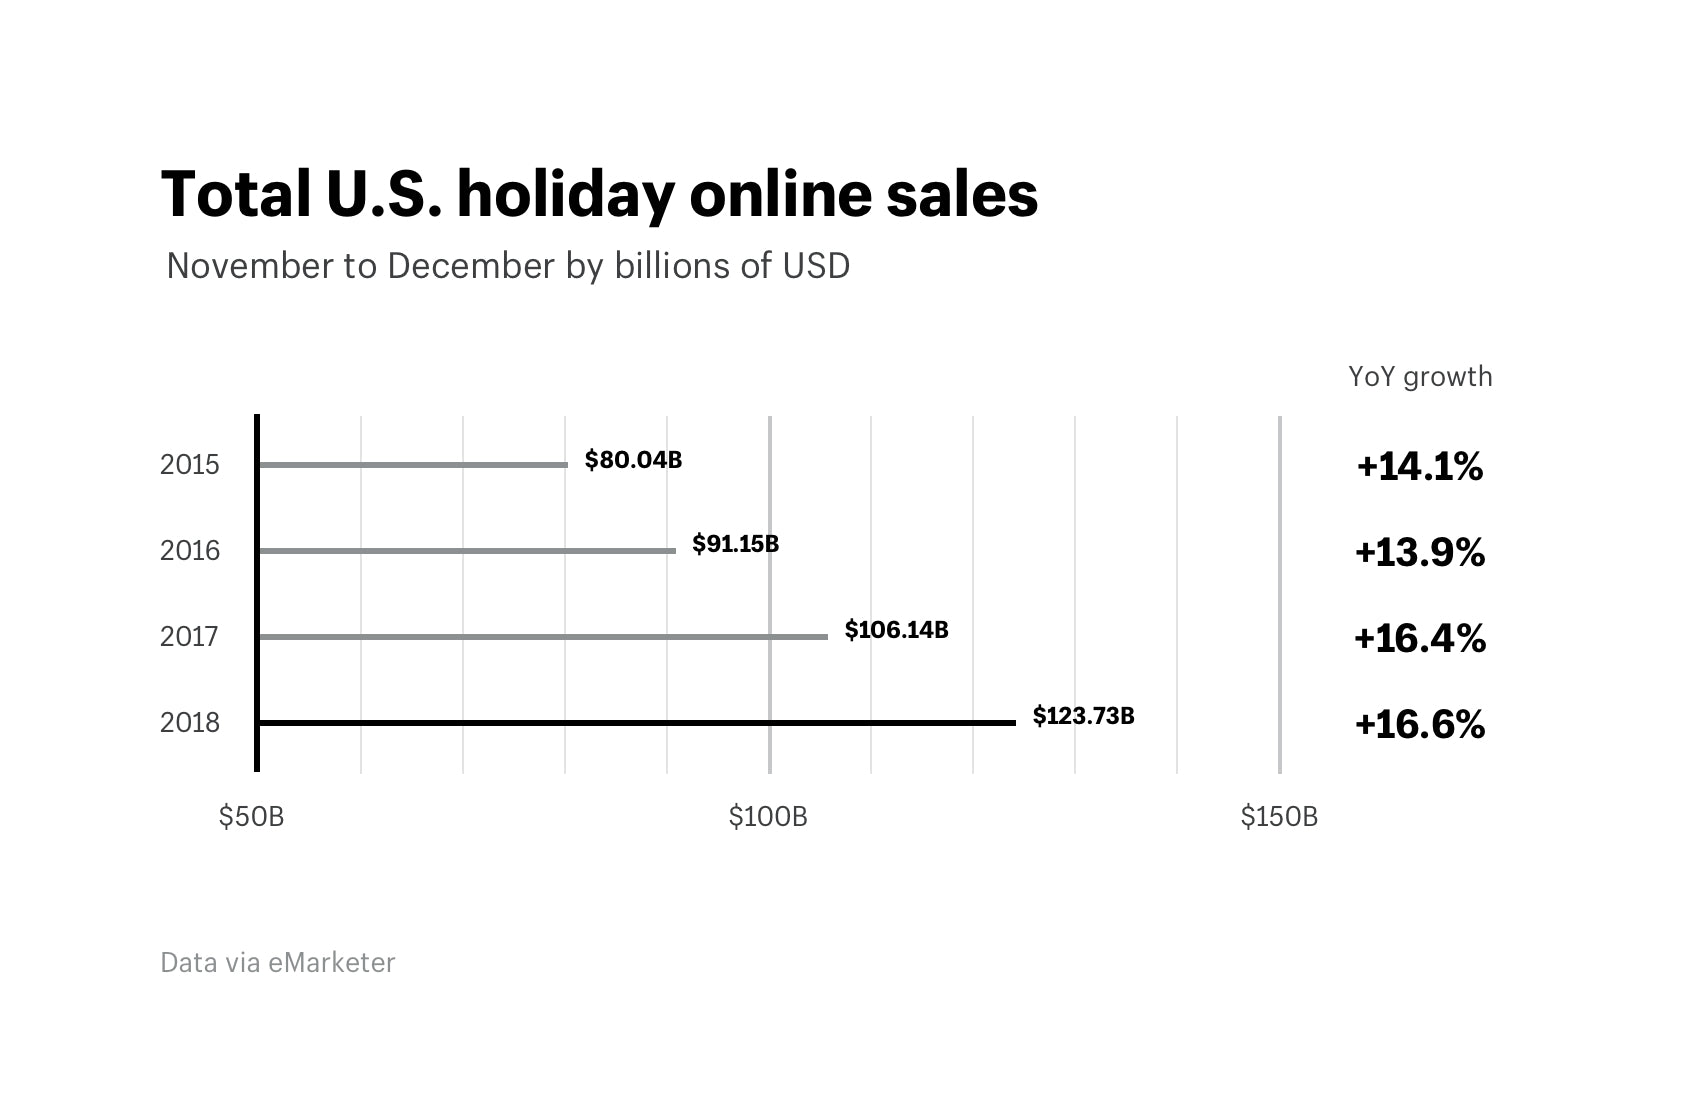 Total U.S. holiday online sales